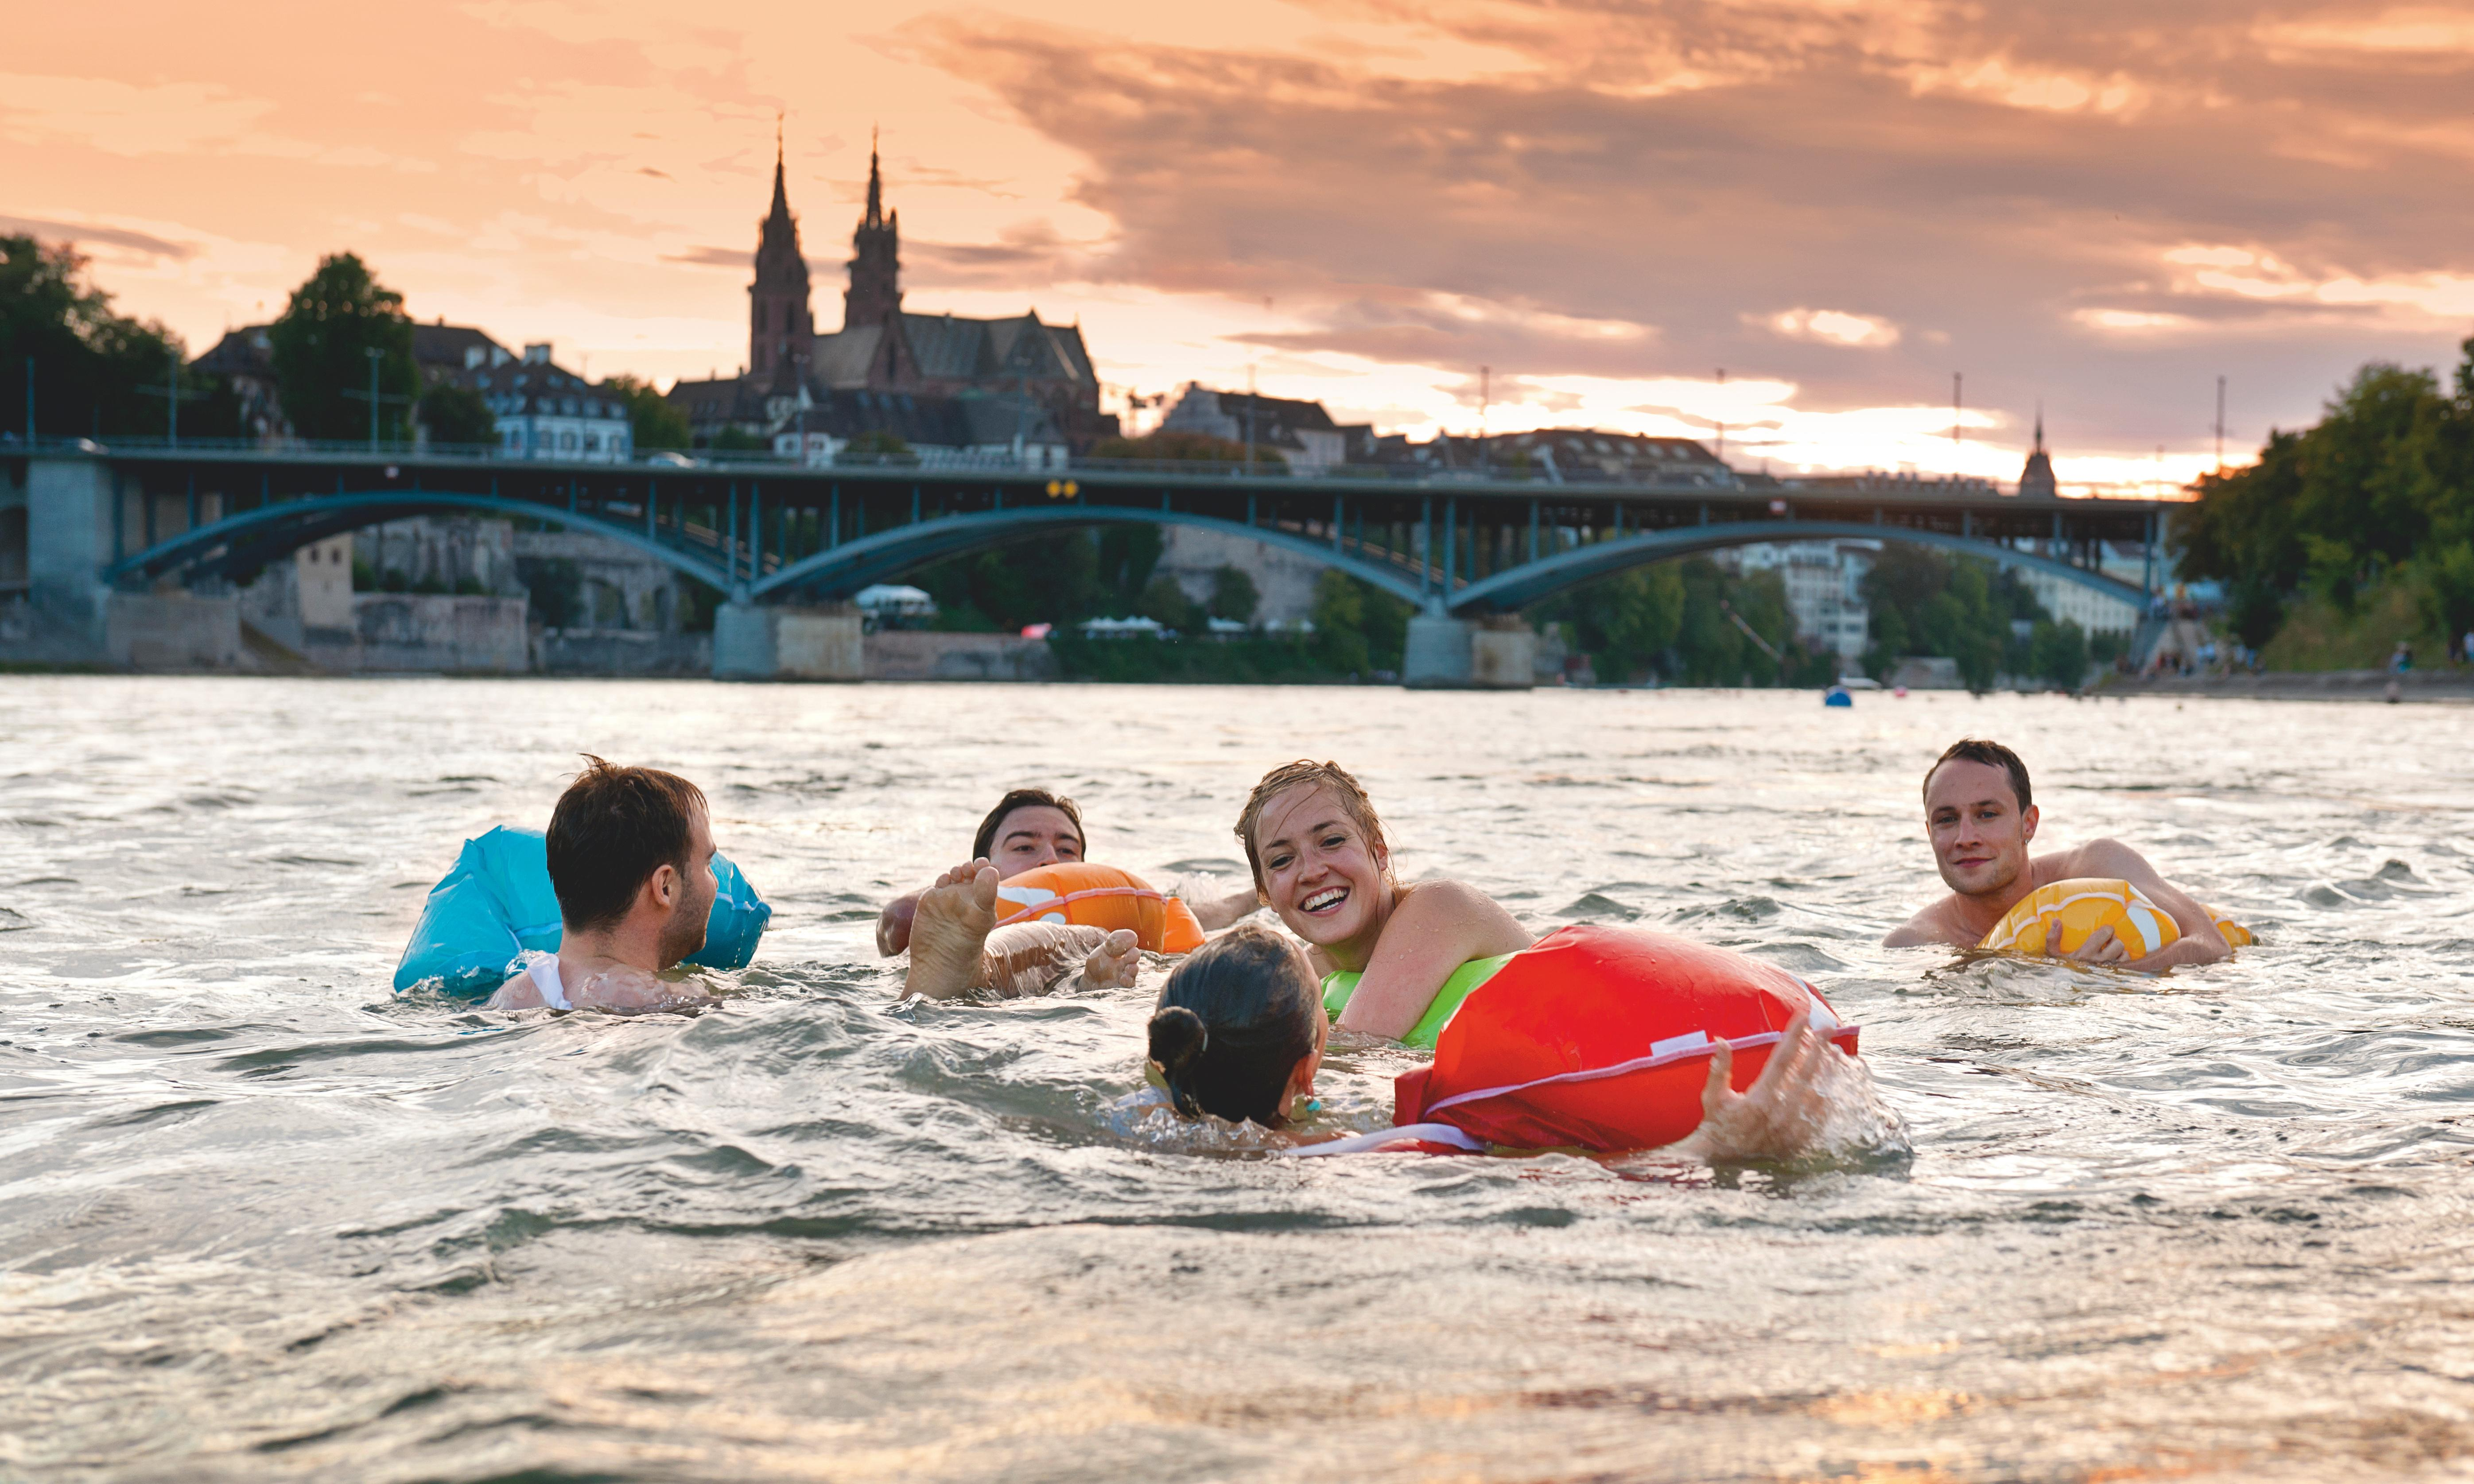 City swimming, Swiss-style: a ride down the Rhine in Basel